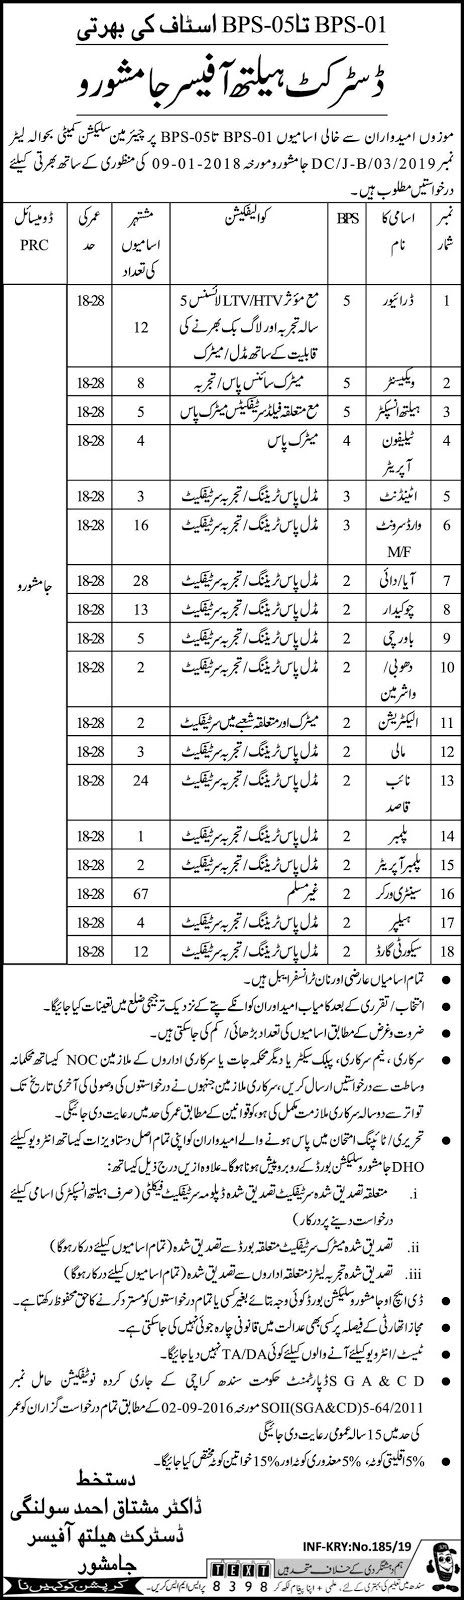 .jobs in district health officer nowshera,health,school health and nutrition supervisor jobs in punjab,jobs,jobs in health department faisalabad,jobs in health department sindh,sindh,online jobs in pakistan,health technician jobs,medical officer male jobs,sindh jobs,medical officer female jobs,health jobs,pphi sindh jobs 2018,female medical officer sinology jobs,karachi jobs,pph sindh new jobs